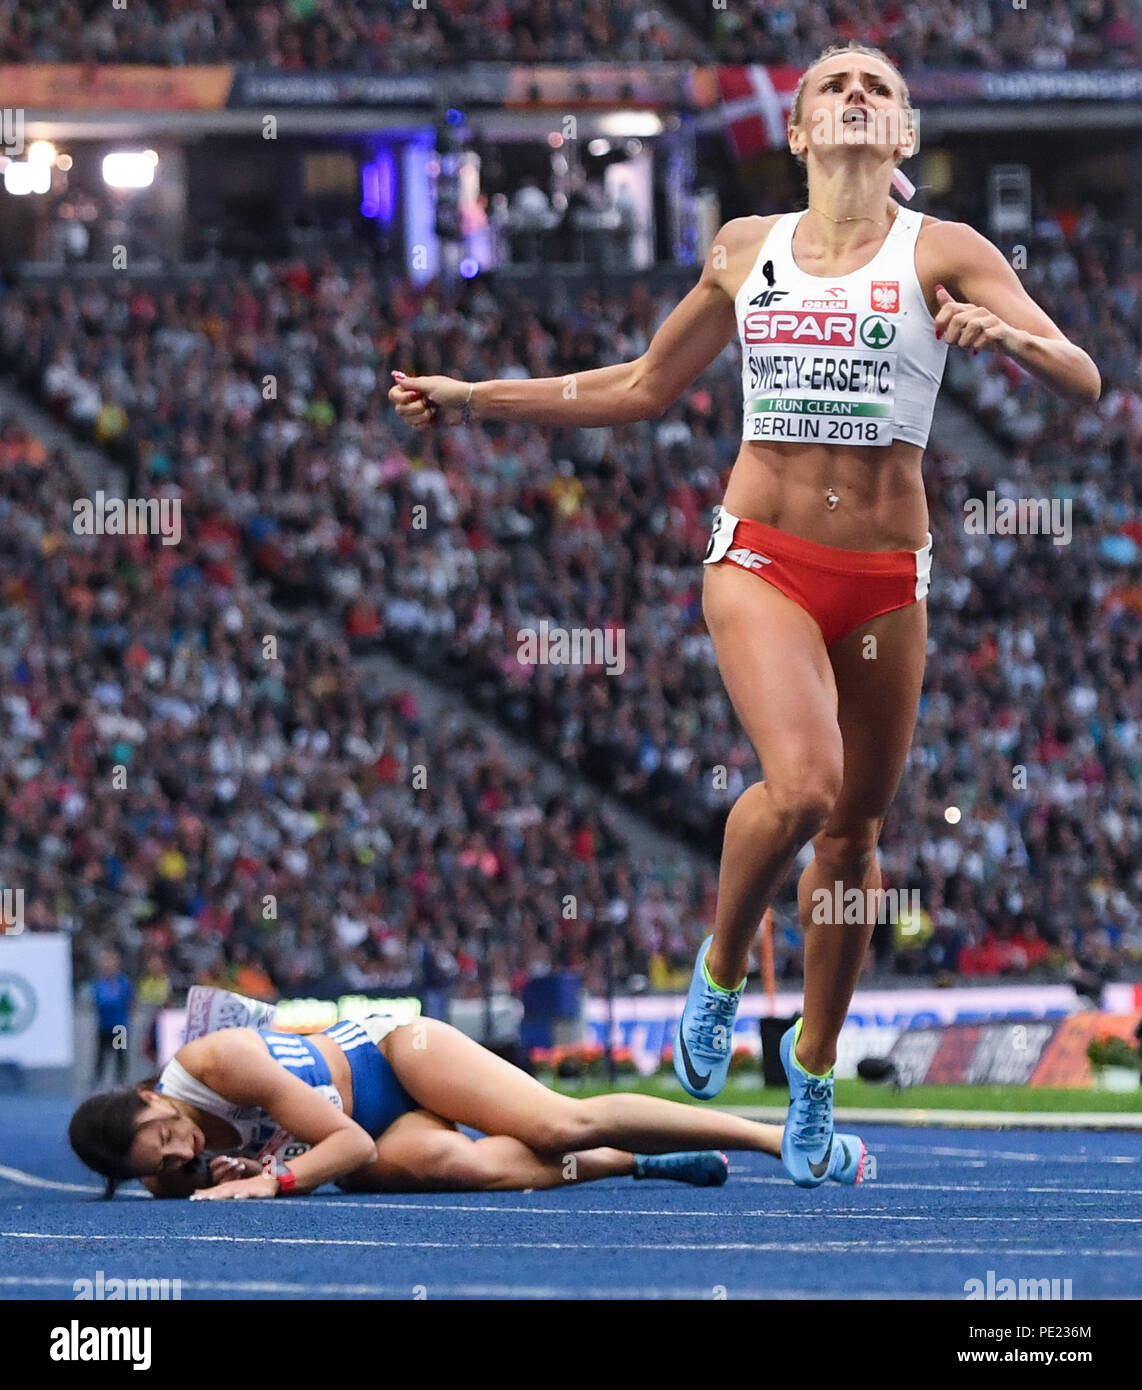 Berlin, Germany. 11th Aug, 2018. European Athletics Championships in the Olympic Stadium: 400 m finals, women: Maria Belibasaki from Greece and Justyna Swiety-Ersetic from Poland in action. Credit: Sven Hoppe/dpa/Alamy Live News - Stock Image